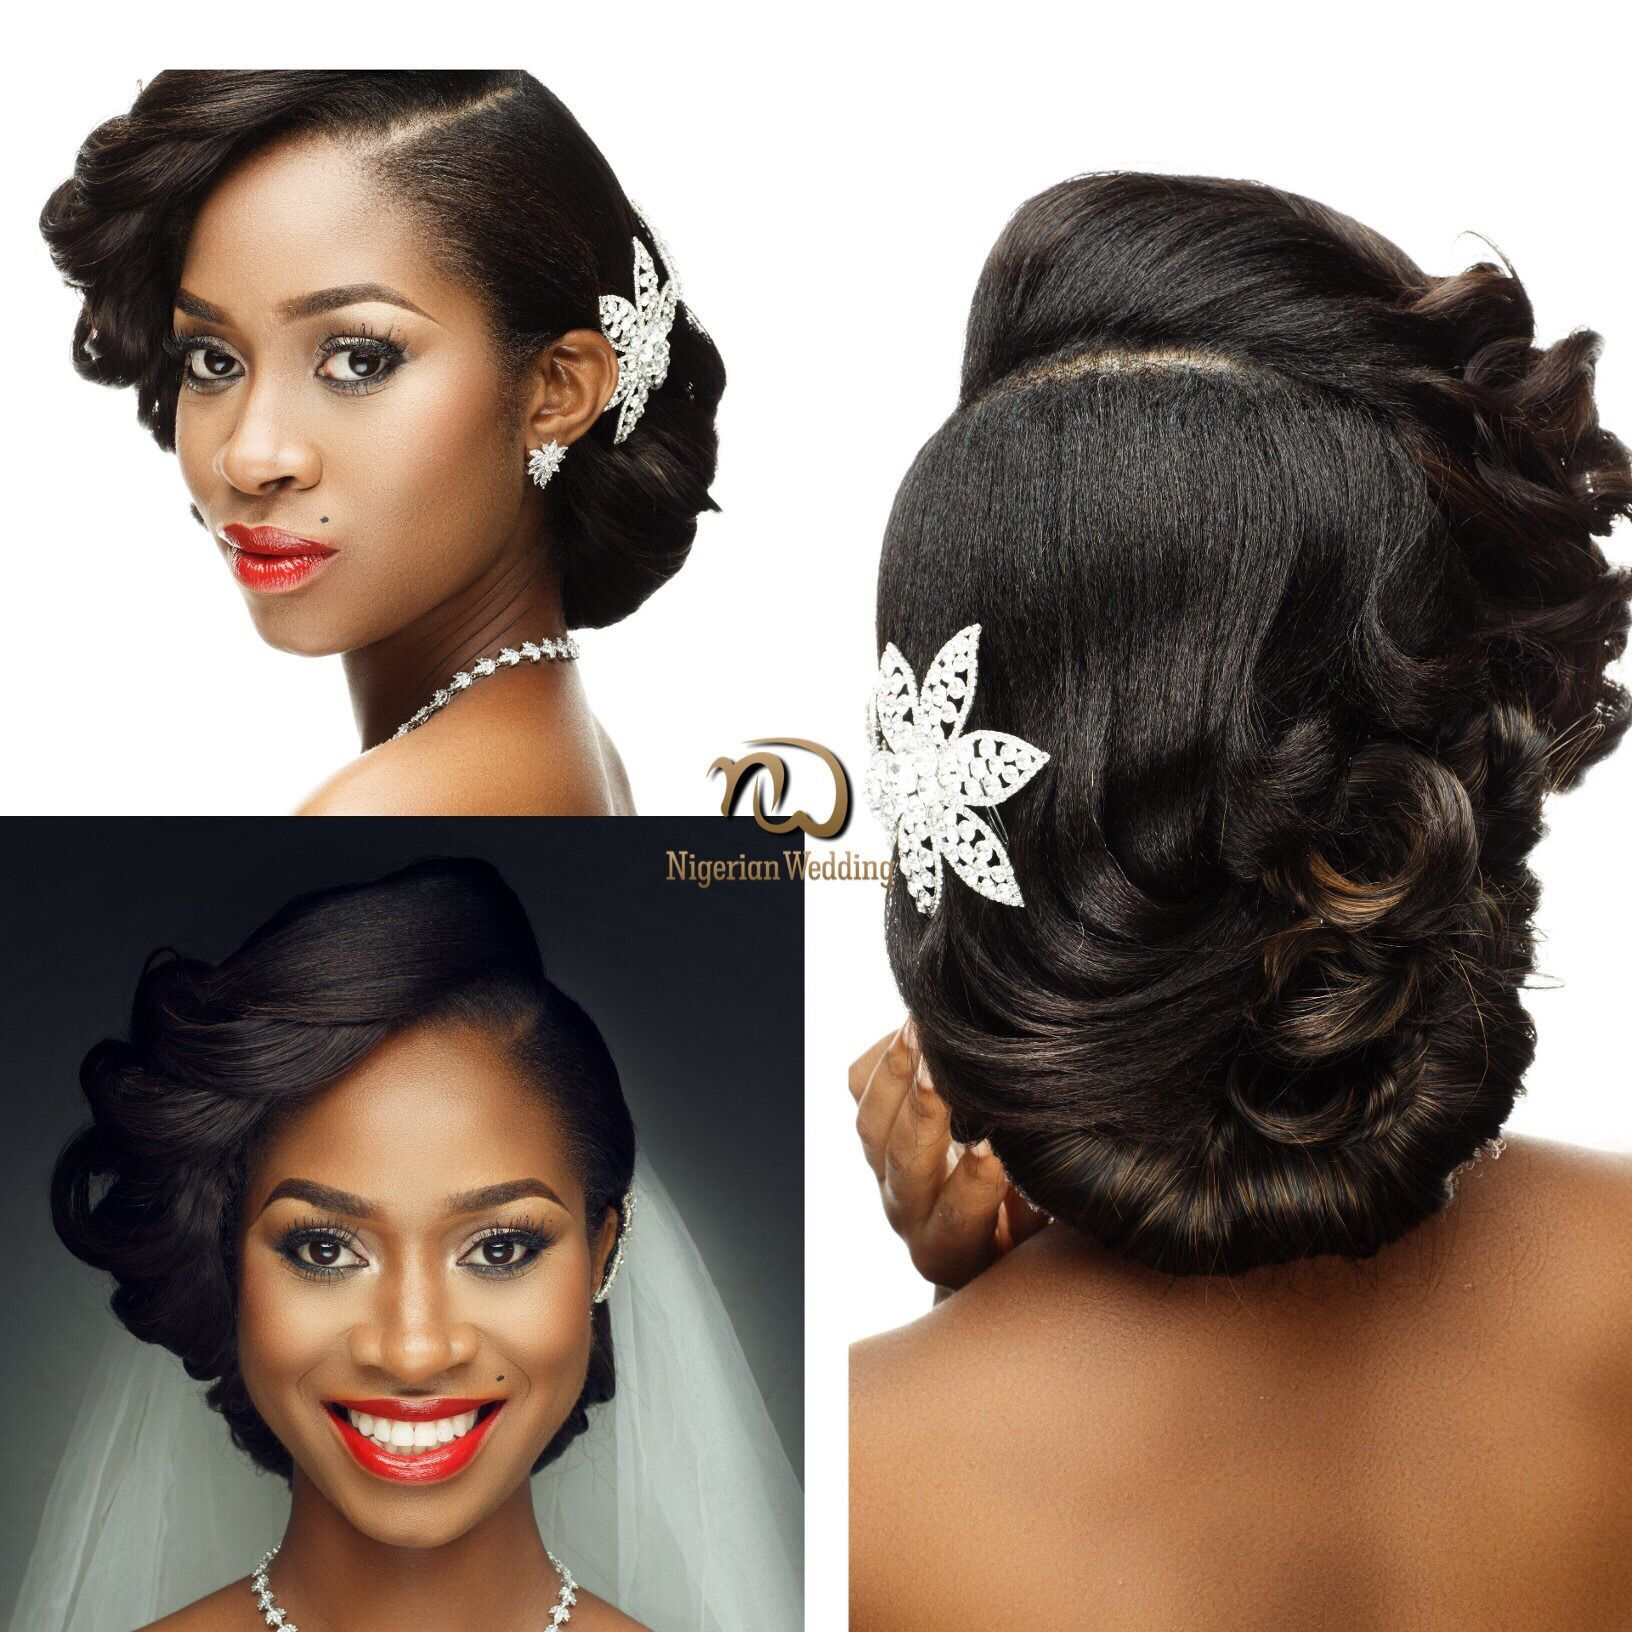 nigerian wedding presents gorgeous bridal hair & makeup